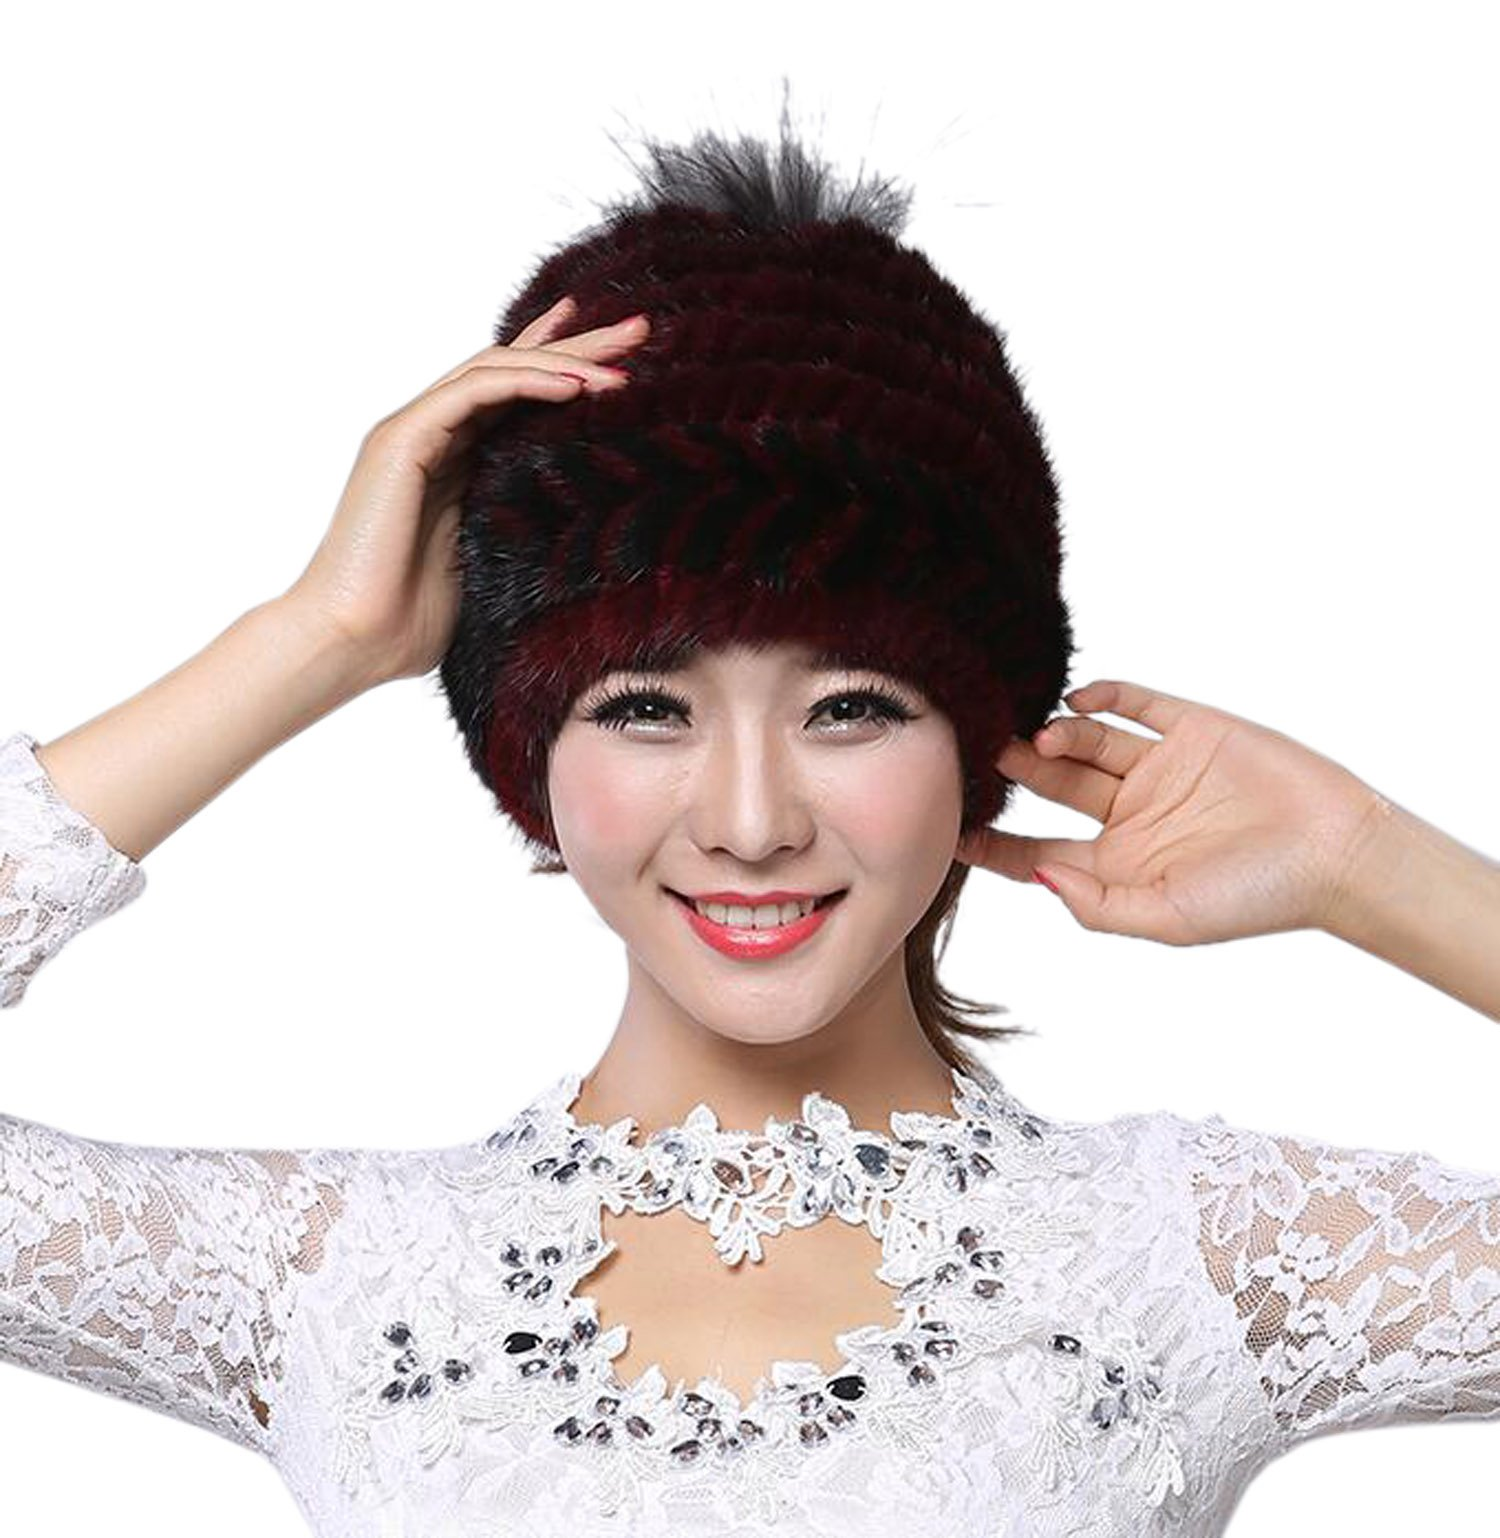 Easting Popular Women Winter Cap Knitted Mink Fur Hat New Style with Fox Fur Top (Black&Red)